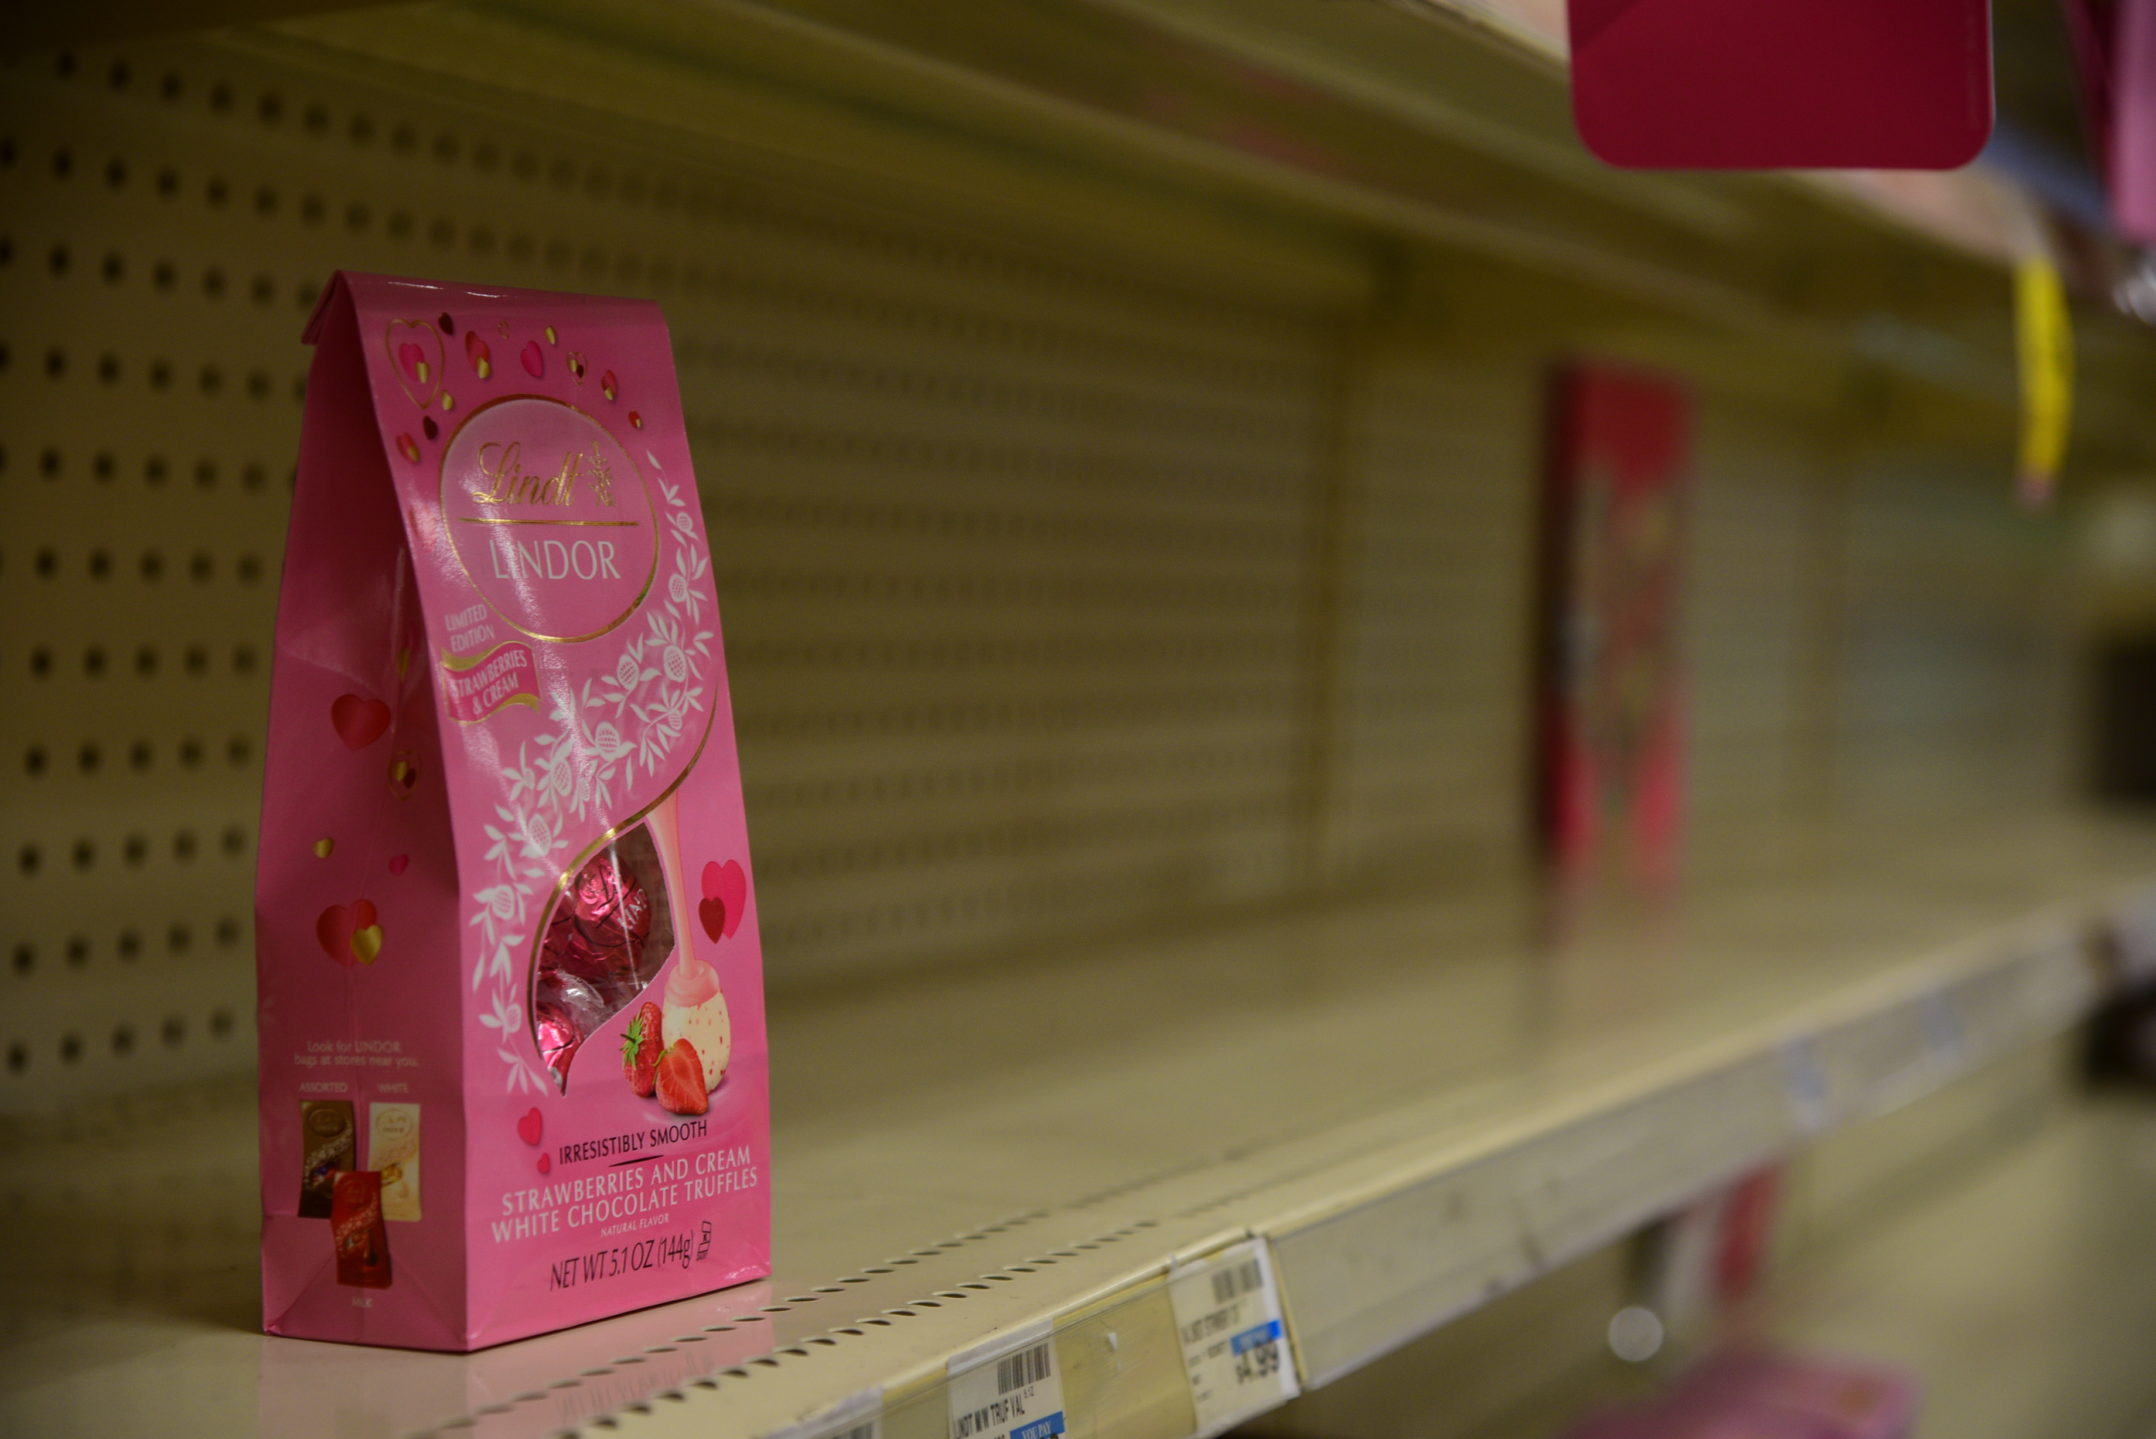 The last of the Valentine's Day treats sit on the shelves of CVS located at 305 W. Fourth St. as the night comes to an end. The Valentine's Day section of the store was almost completely emptied. (Ashley Omoma/B&W Staff)